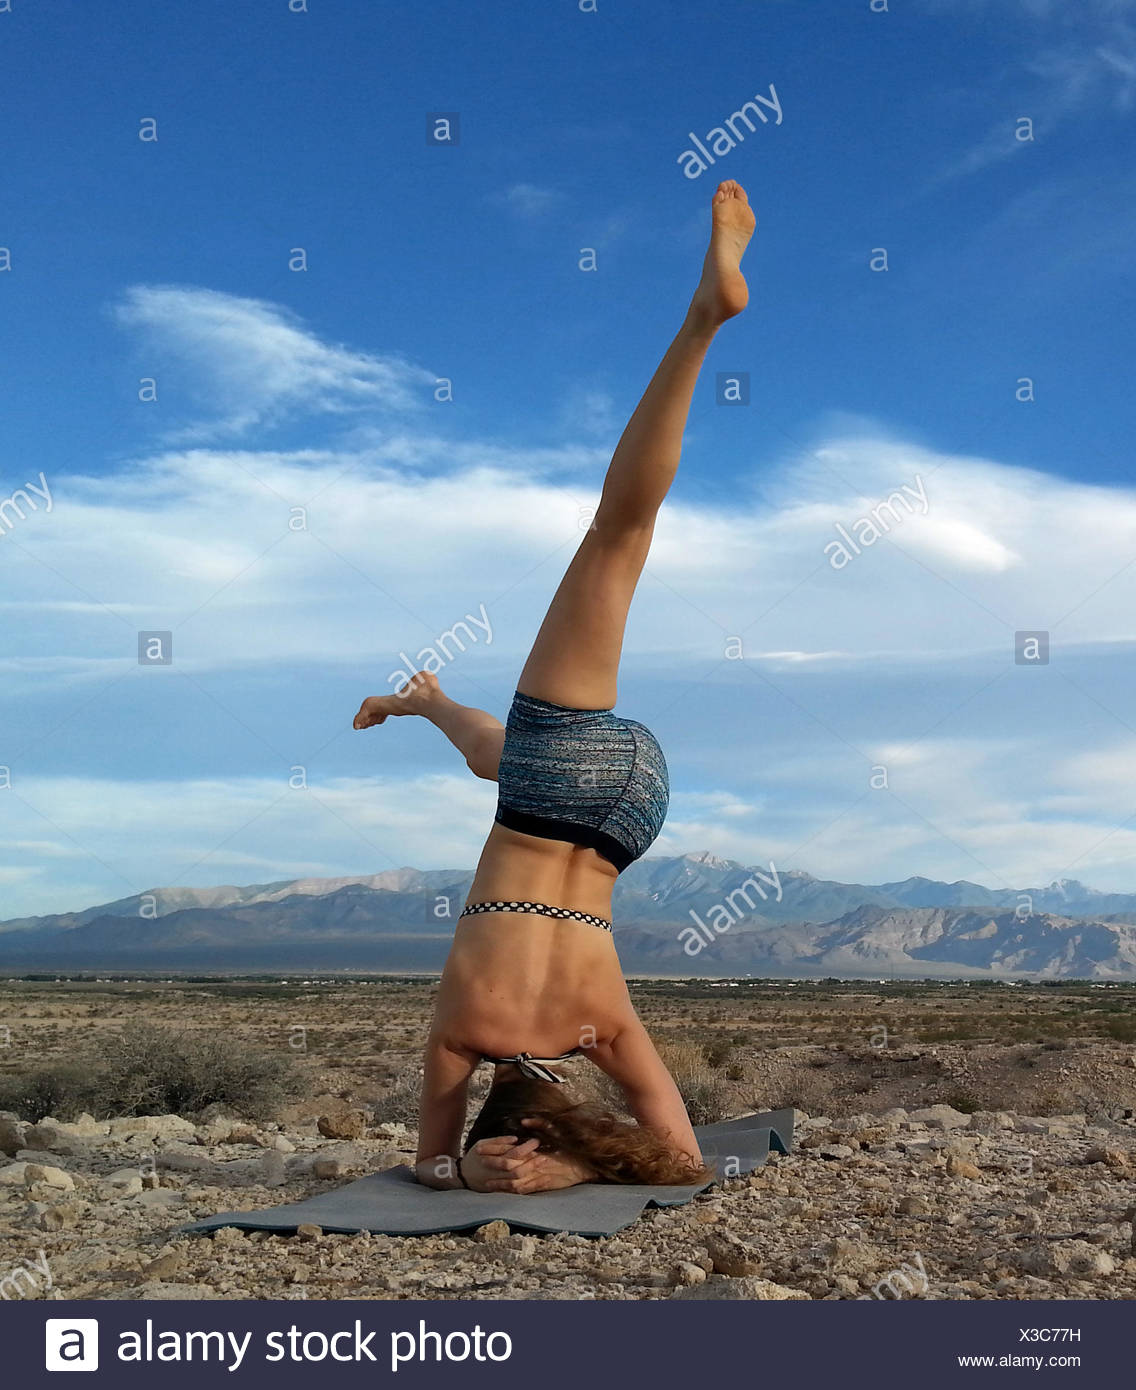 Women doing a head stand in the desert, Nevada, United States Stock Photo